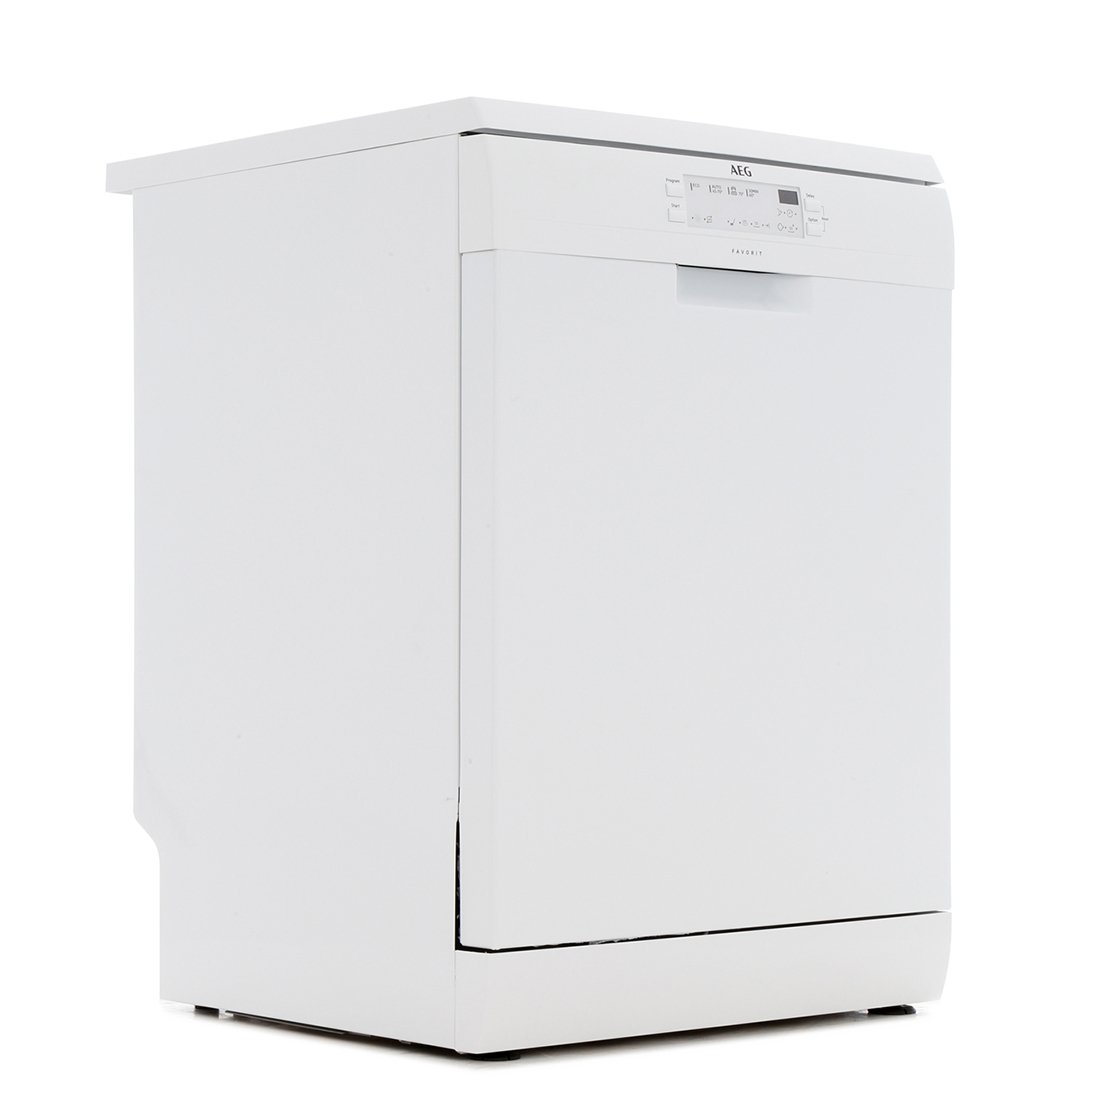 AEG FFB41600ZW Dishwasher with AirDry Technology